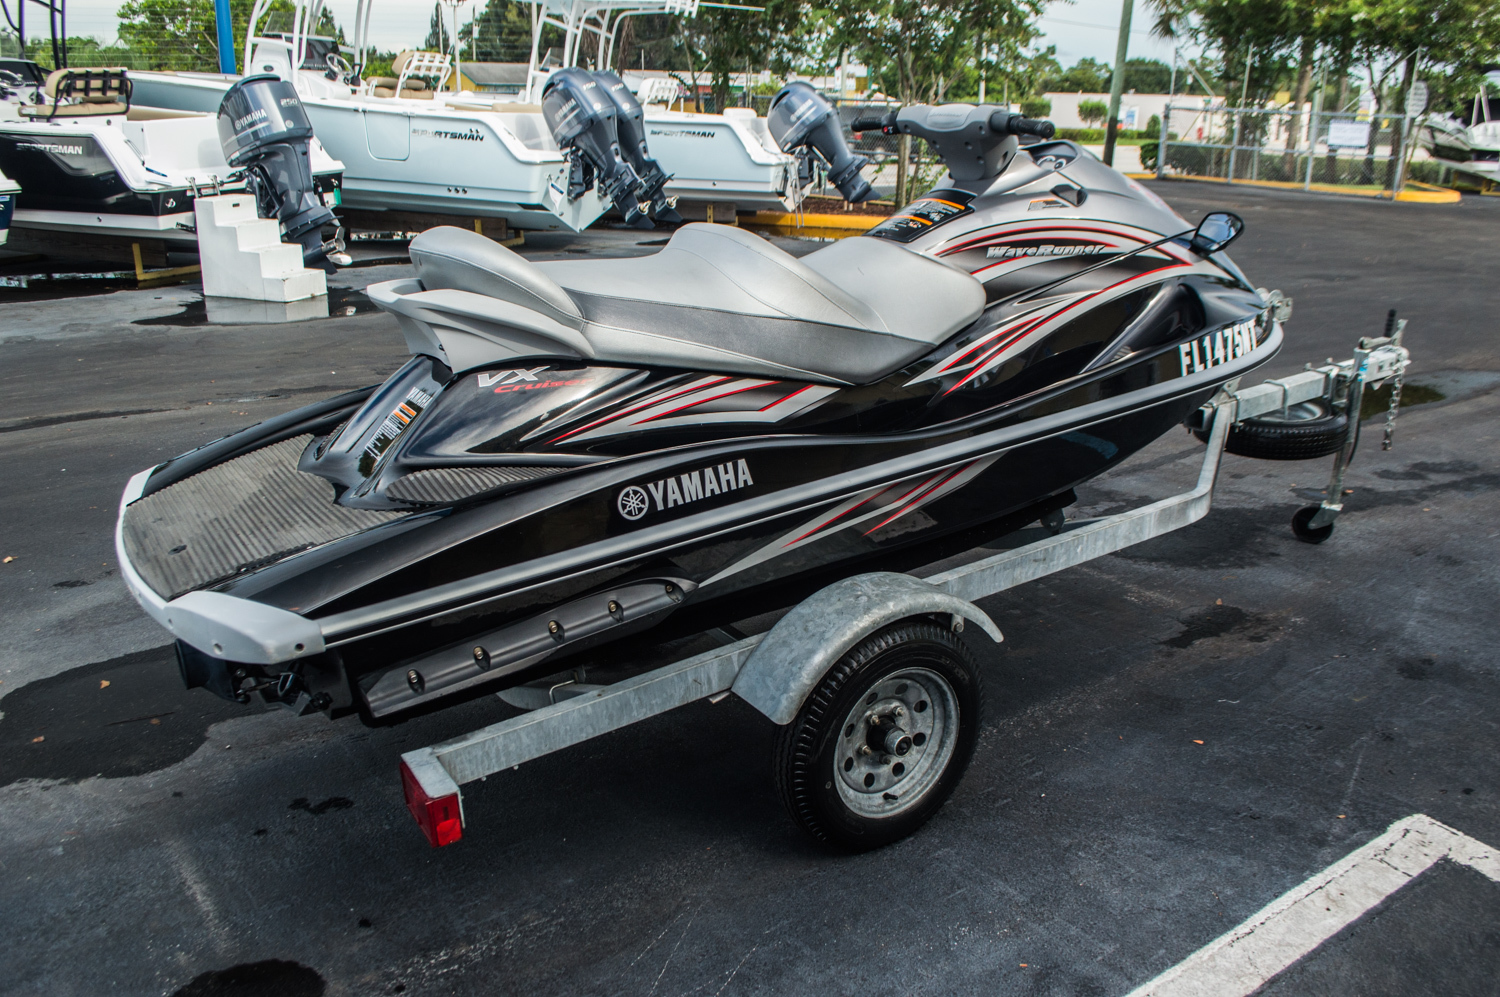 Thumbnail 1 for Used 2007 Yamaha VX Cruiser boat for sale in West Palm Beach, FL